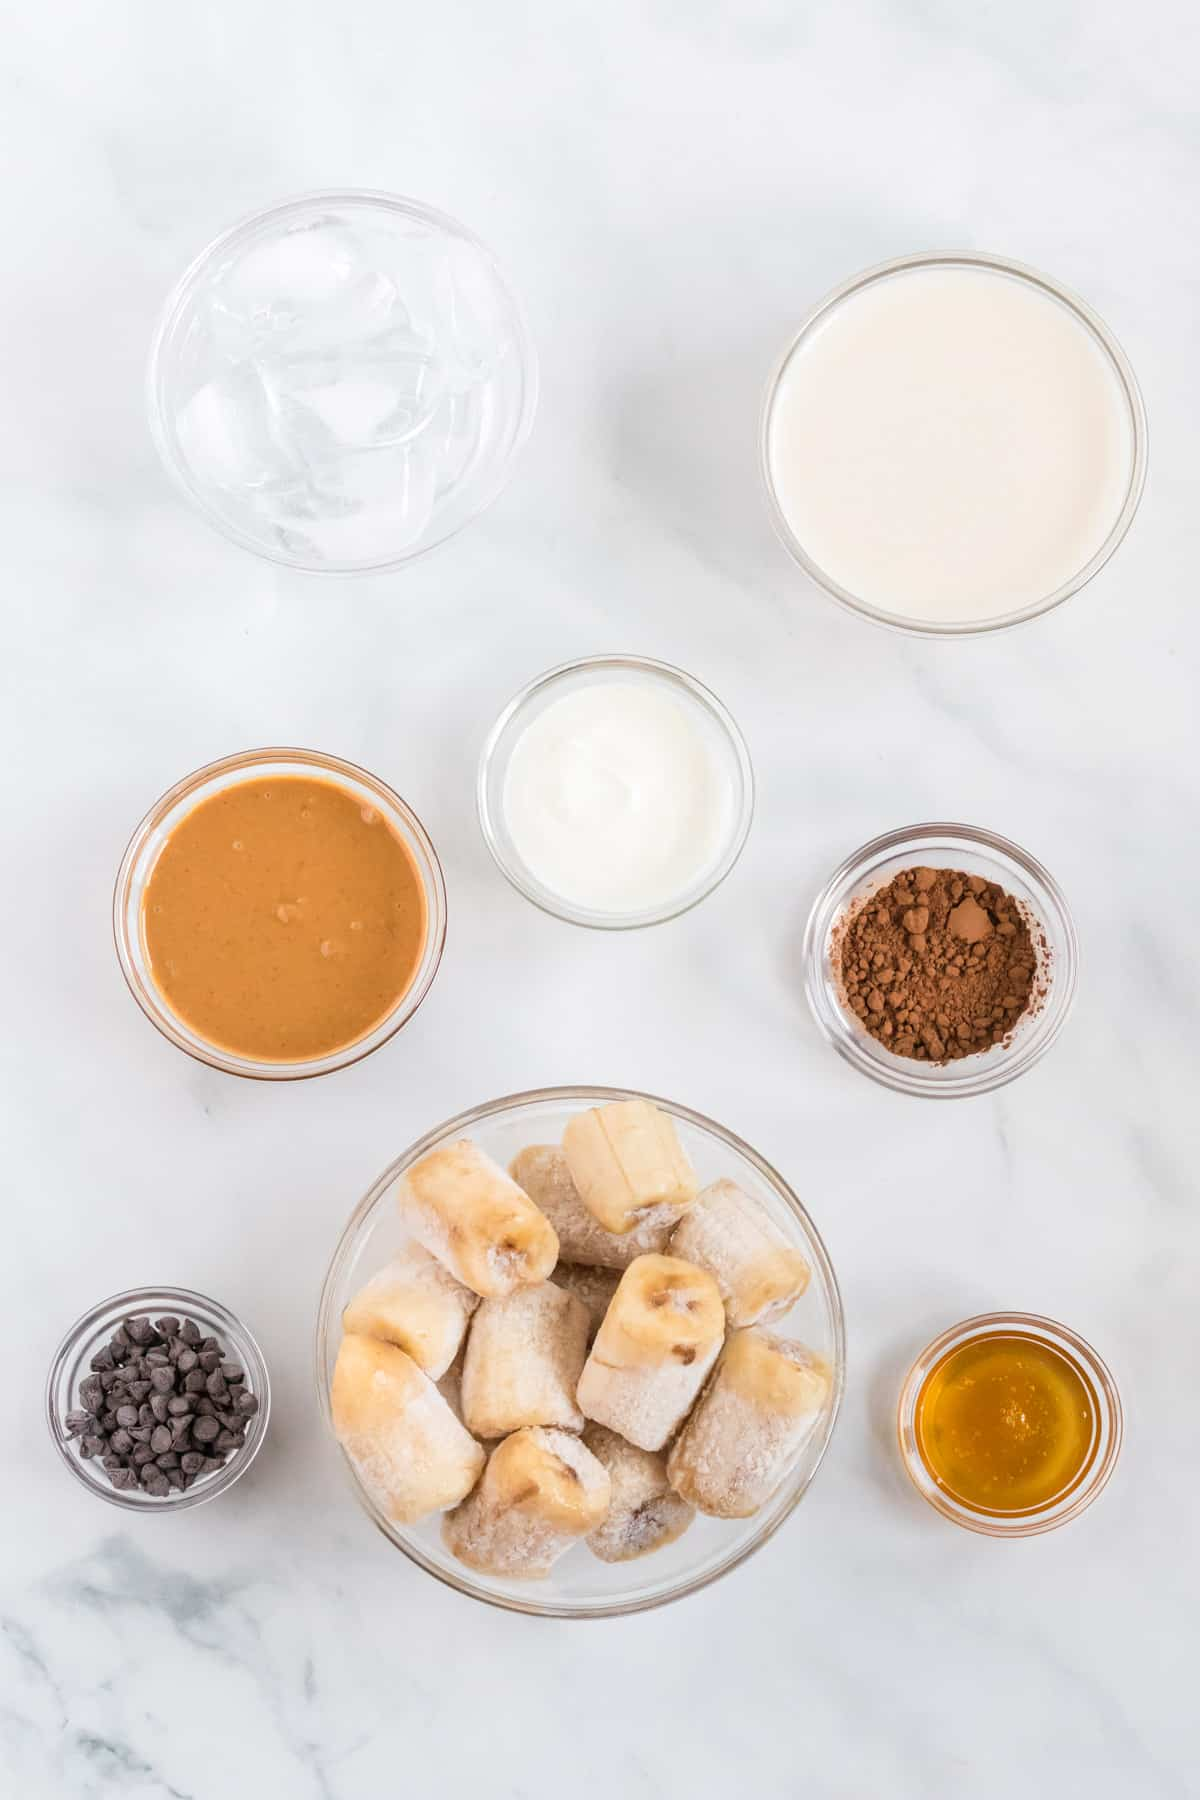 ingredients to make a chocolate peanut butter banana smoothie